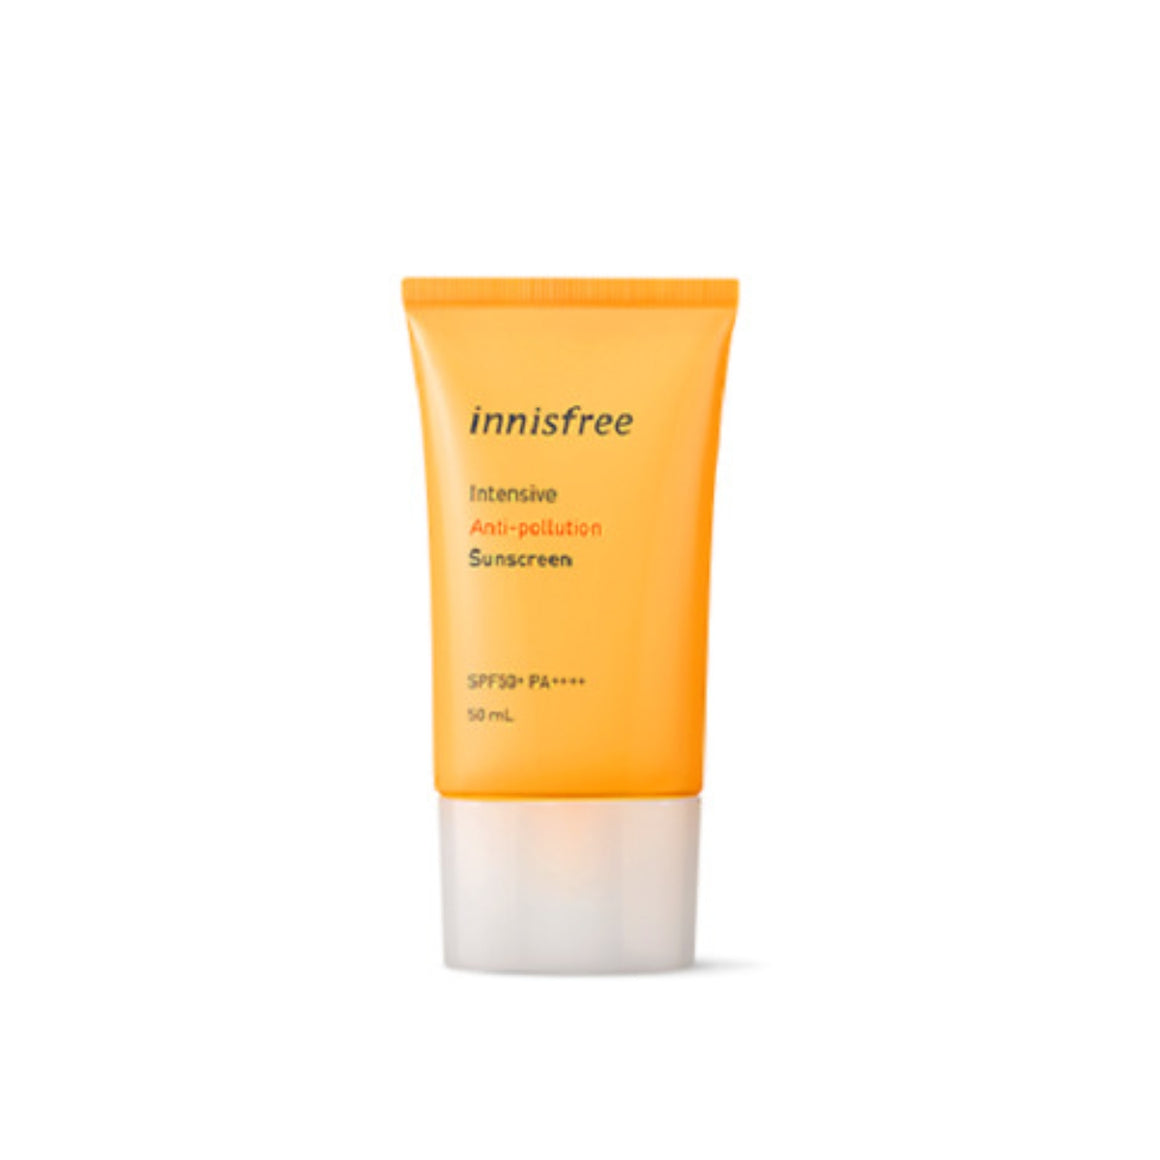 Innisfree Intensive Anti-Pollution Sunscreen SPF 50+ PA++++